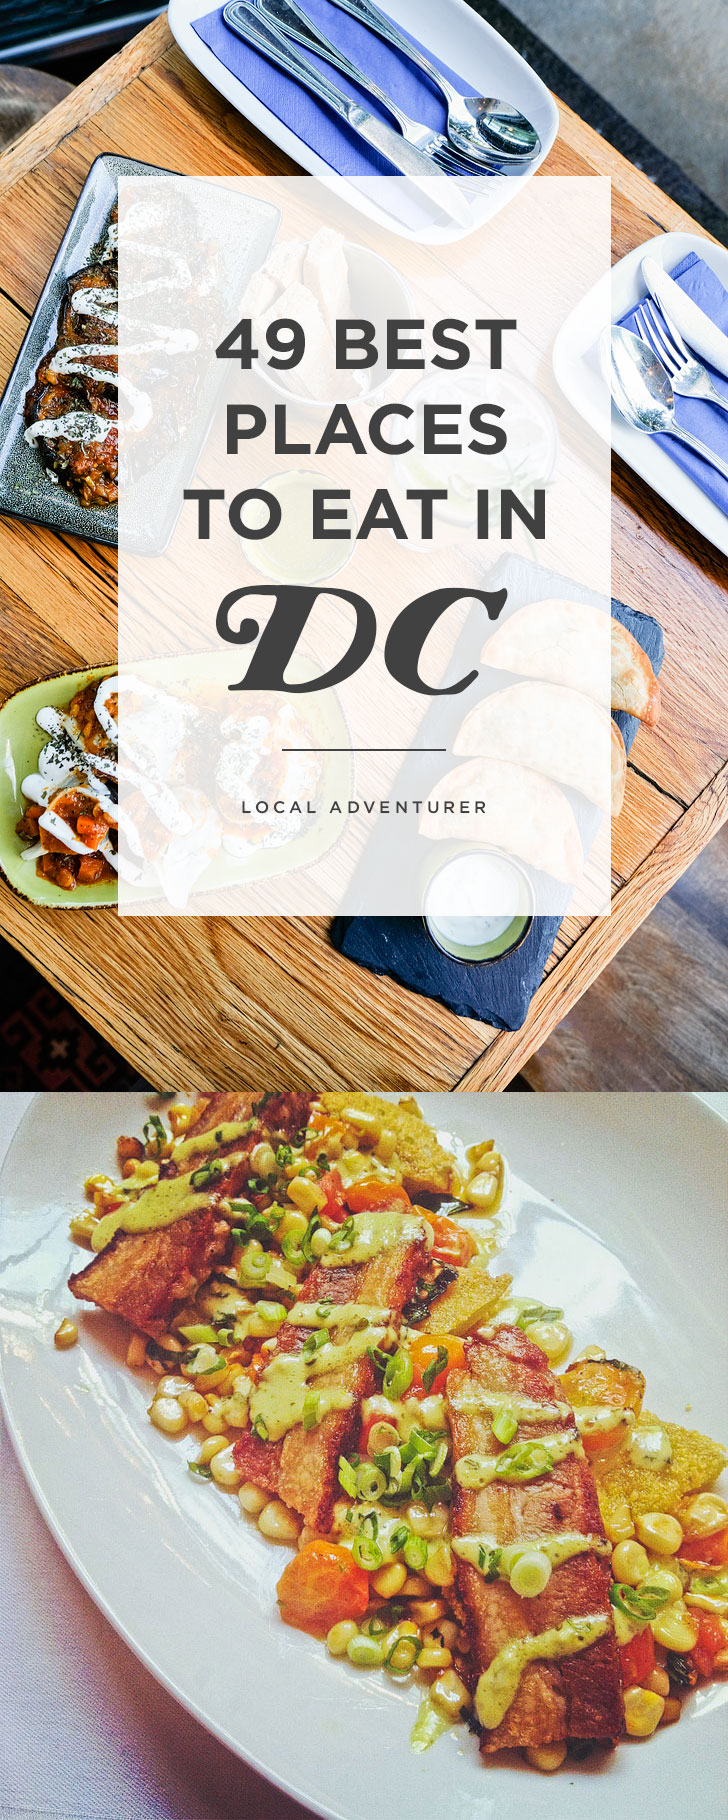 Where to Eat in DC - 49 Amazing Places You Must Try // Local Adventurer